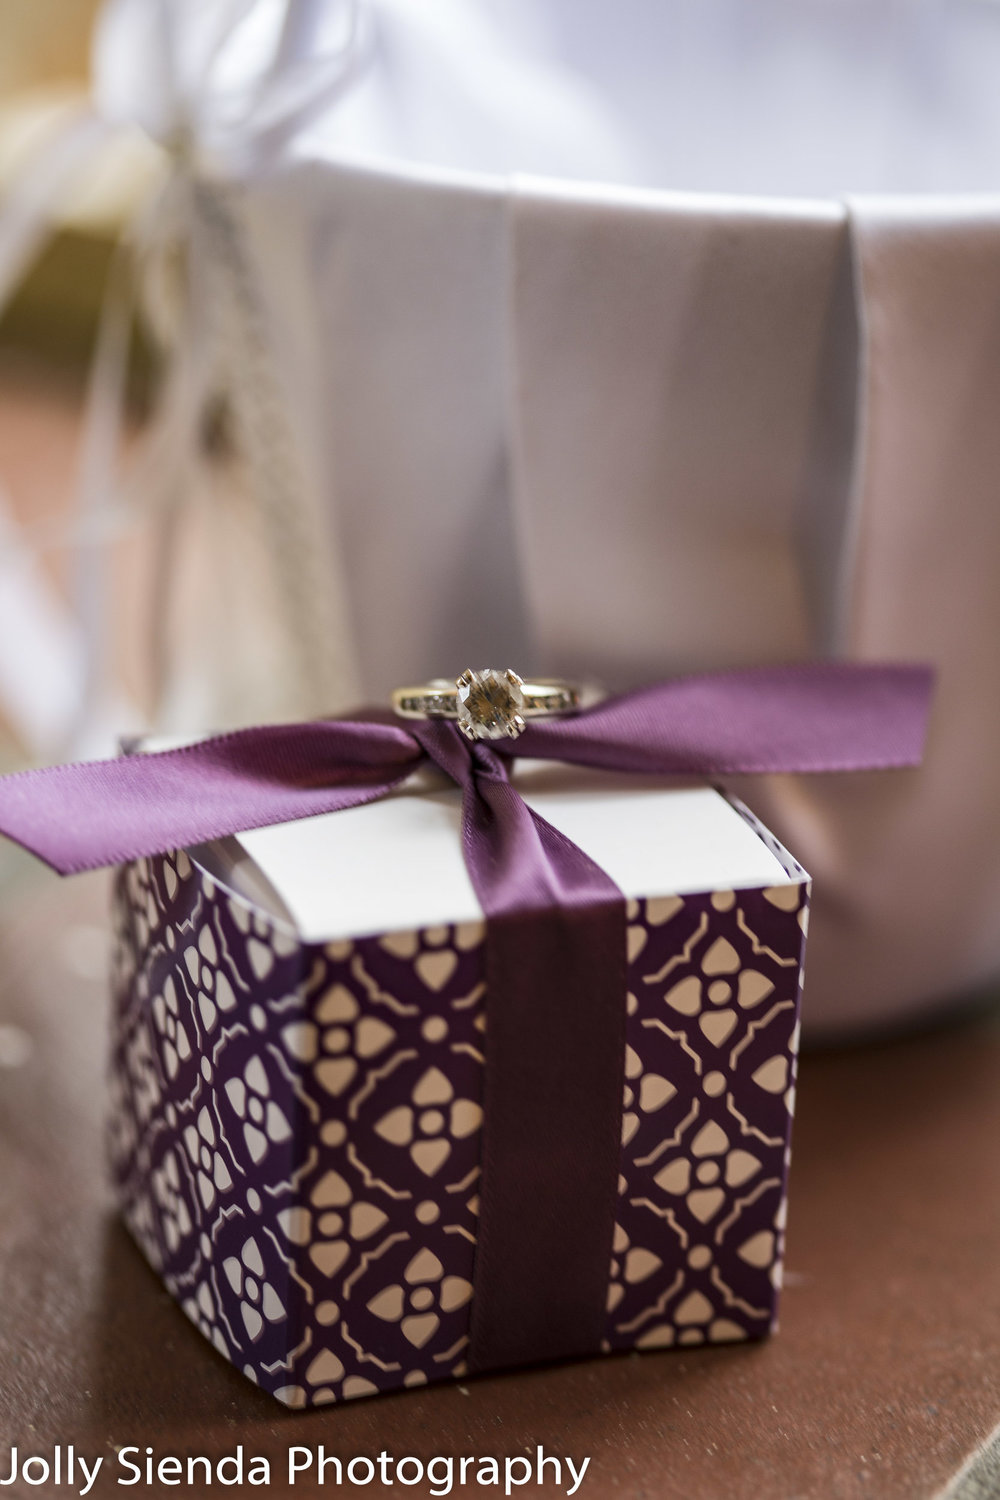 Diamond wedding ring on a wrapped package